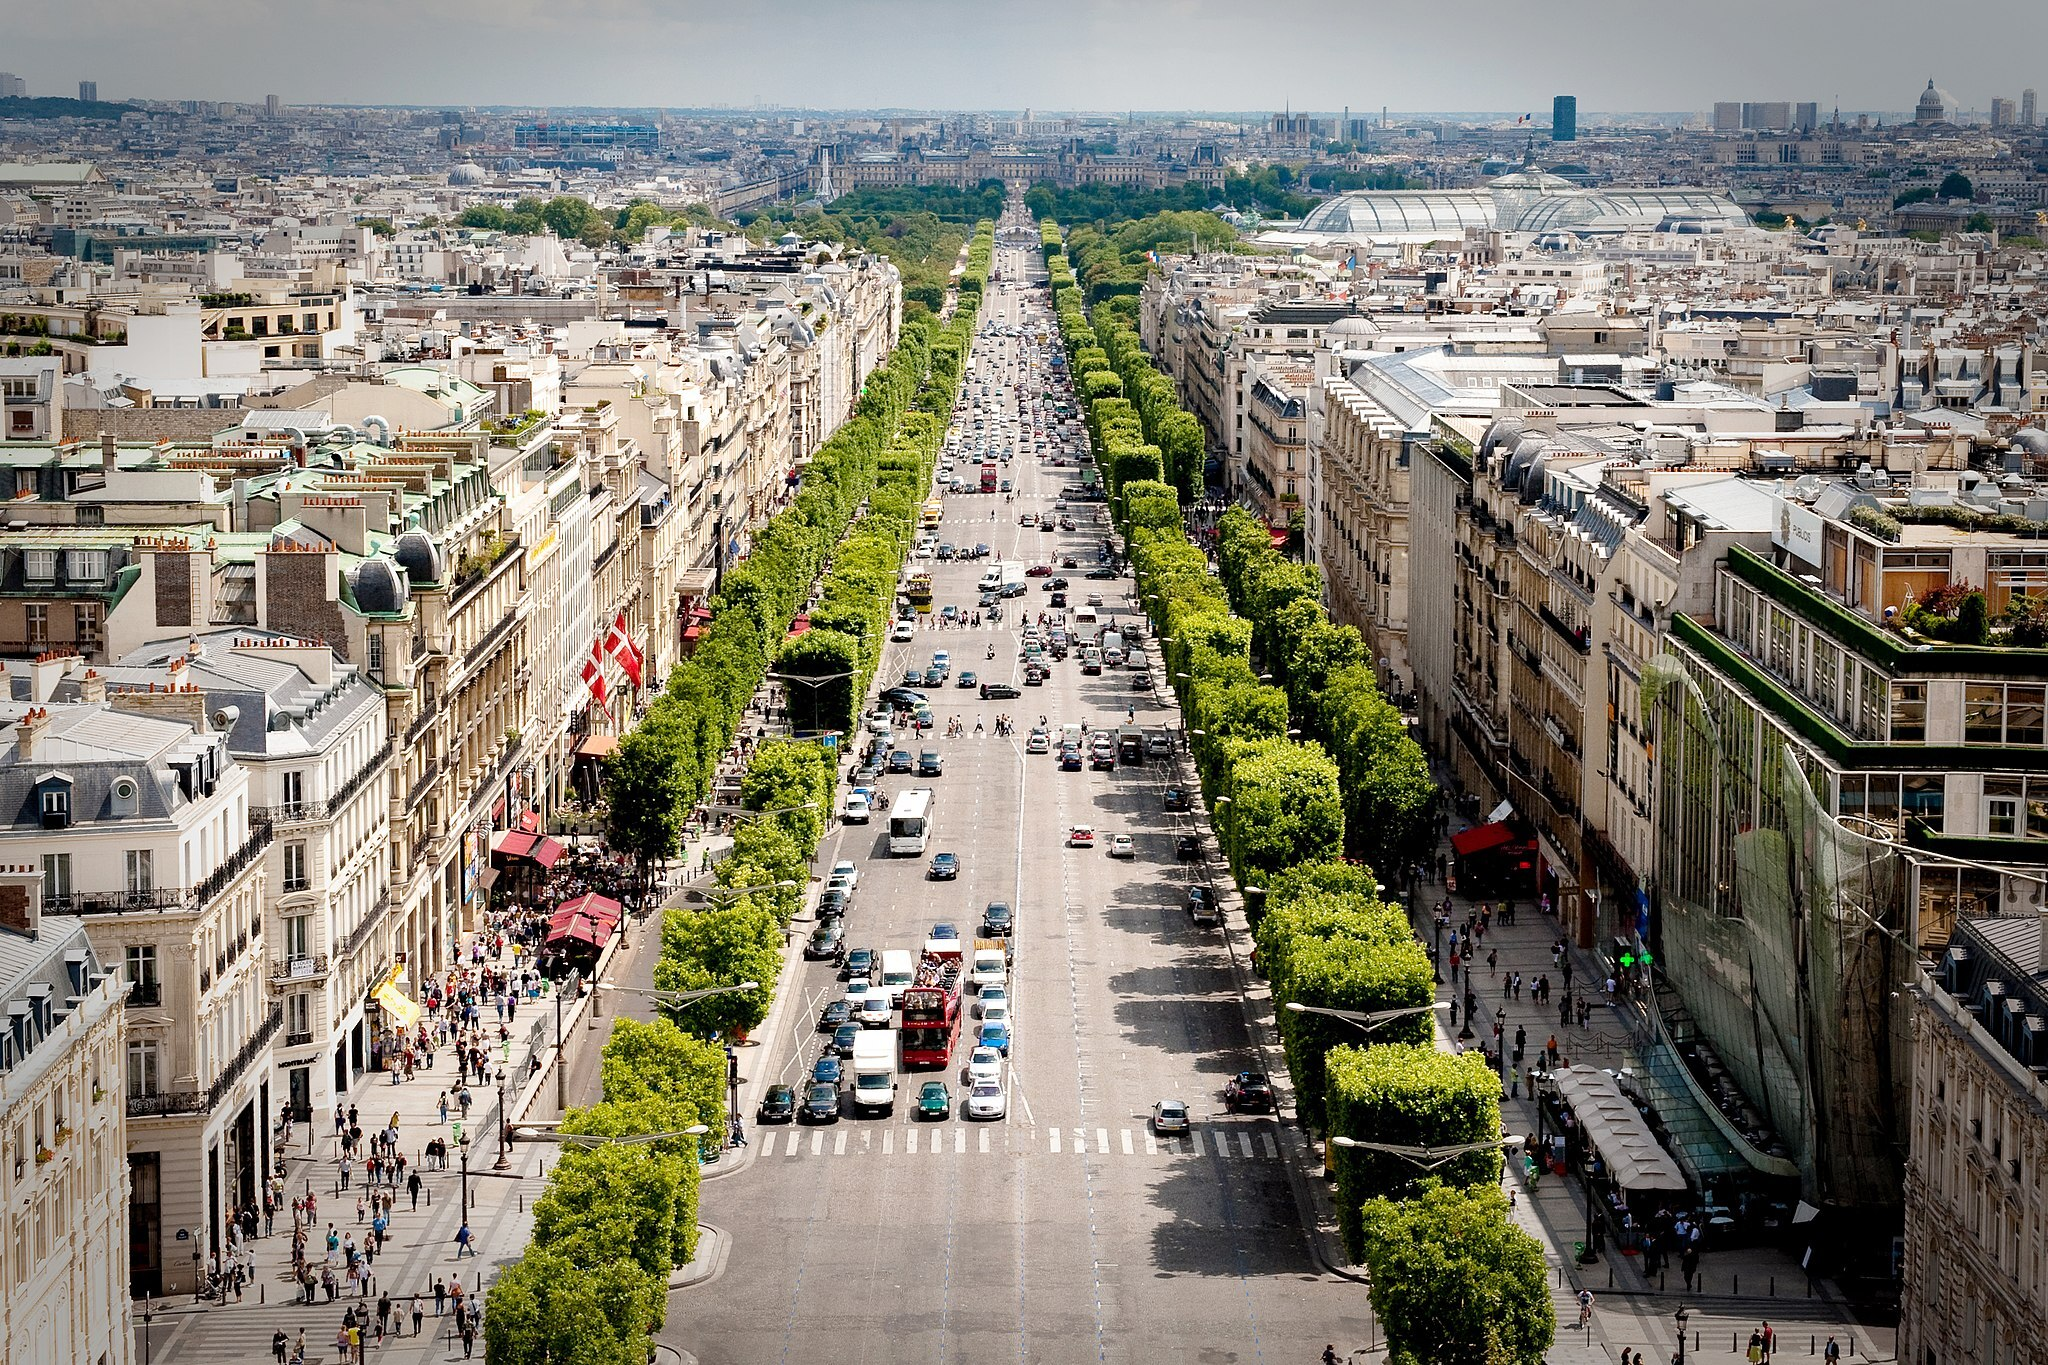 The Champs-Élysées seen from above